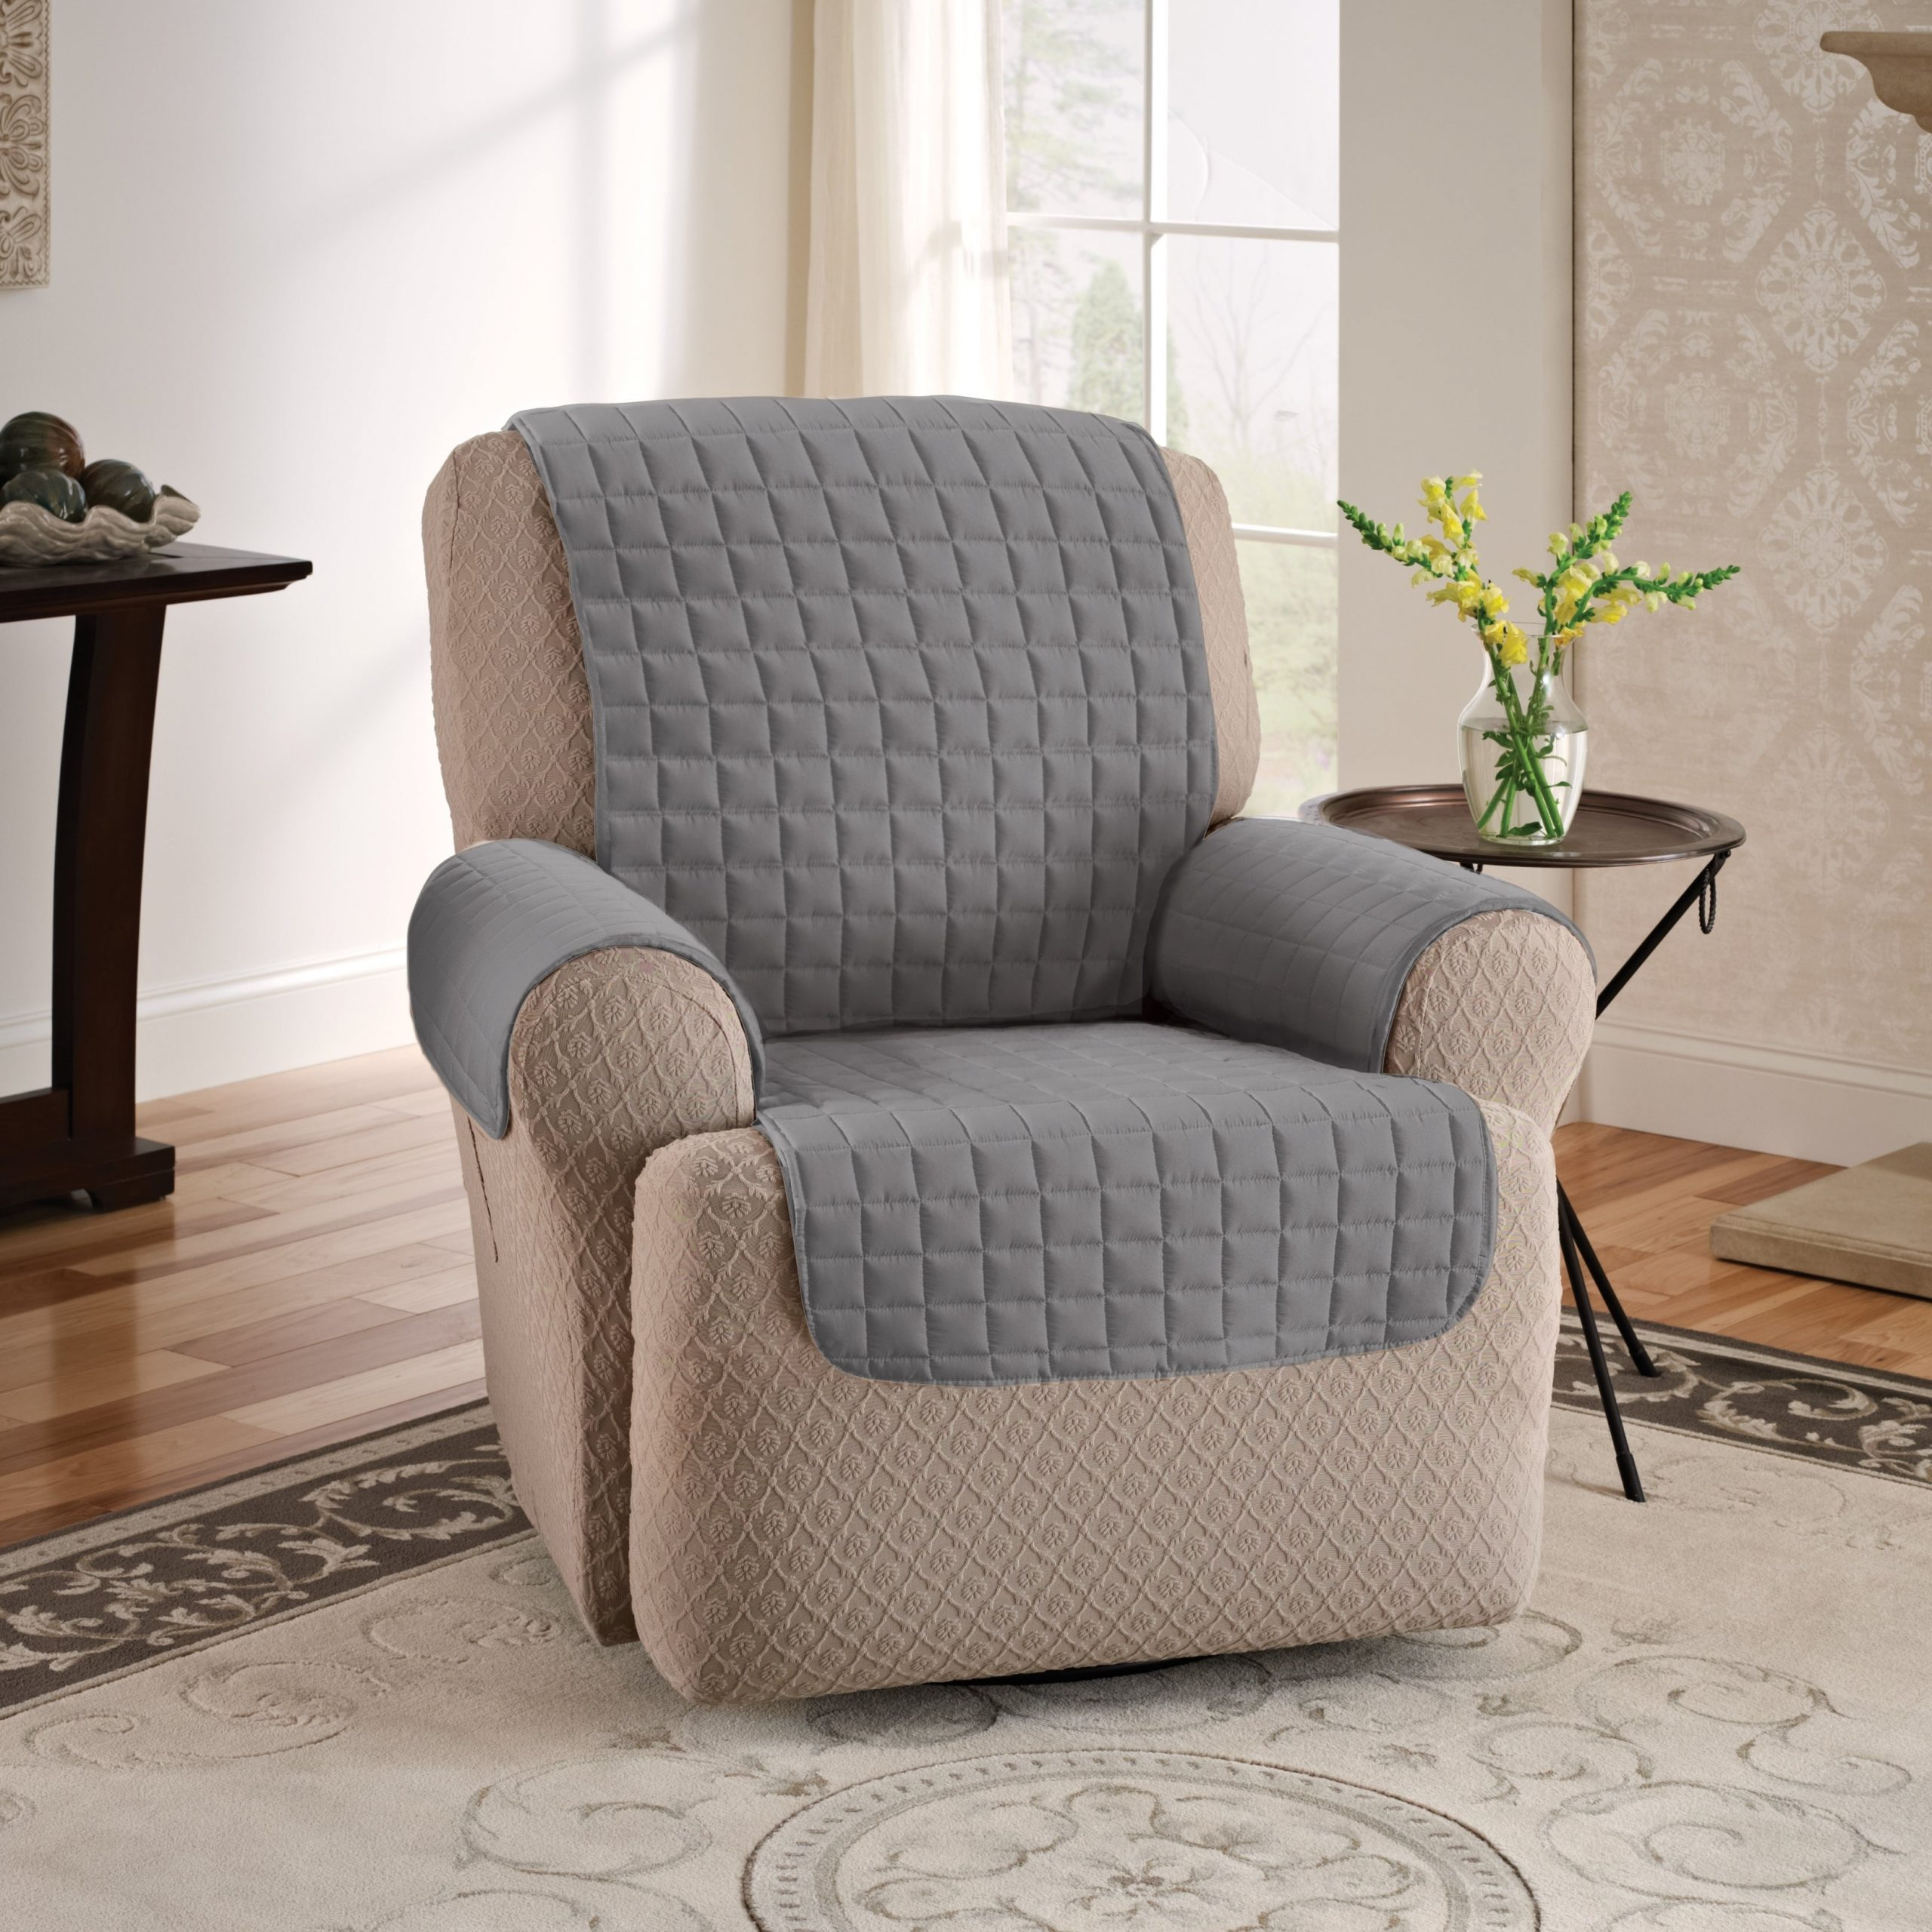 Loose Armchair Covers Protective Quilted Recliner Chair Arm Within Recent Portmeirion Armchairs (View 8 of 20)